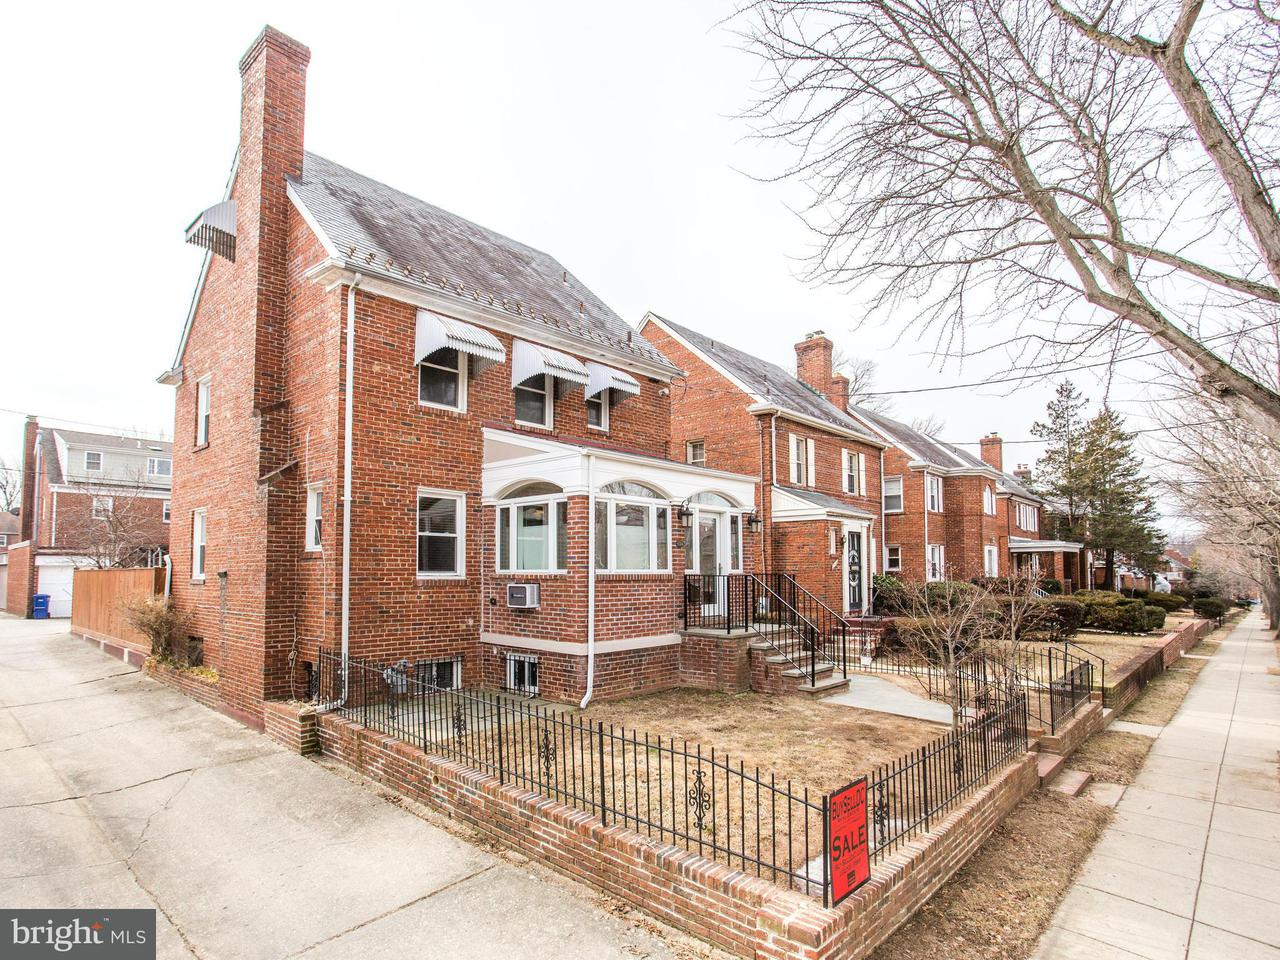 Single Family Home for Sale at 1314 Tewkesbury Pl Nw 1314 Tewkesbury Pl Nw Washington, District Of Columbia 20012 United States